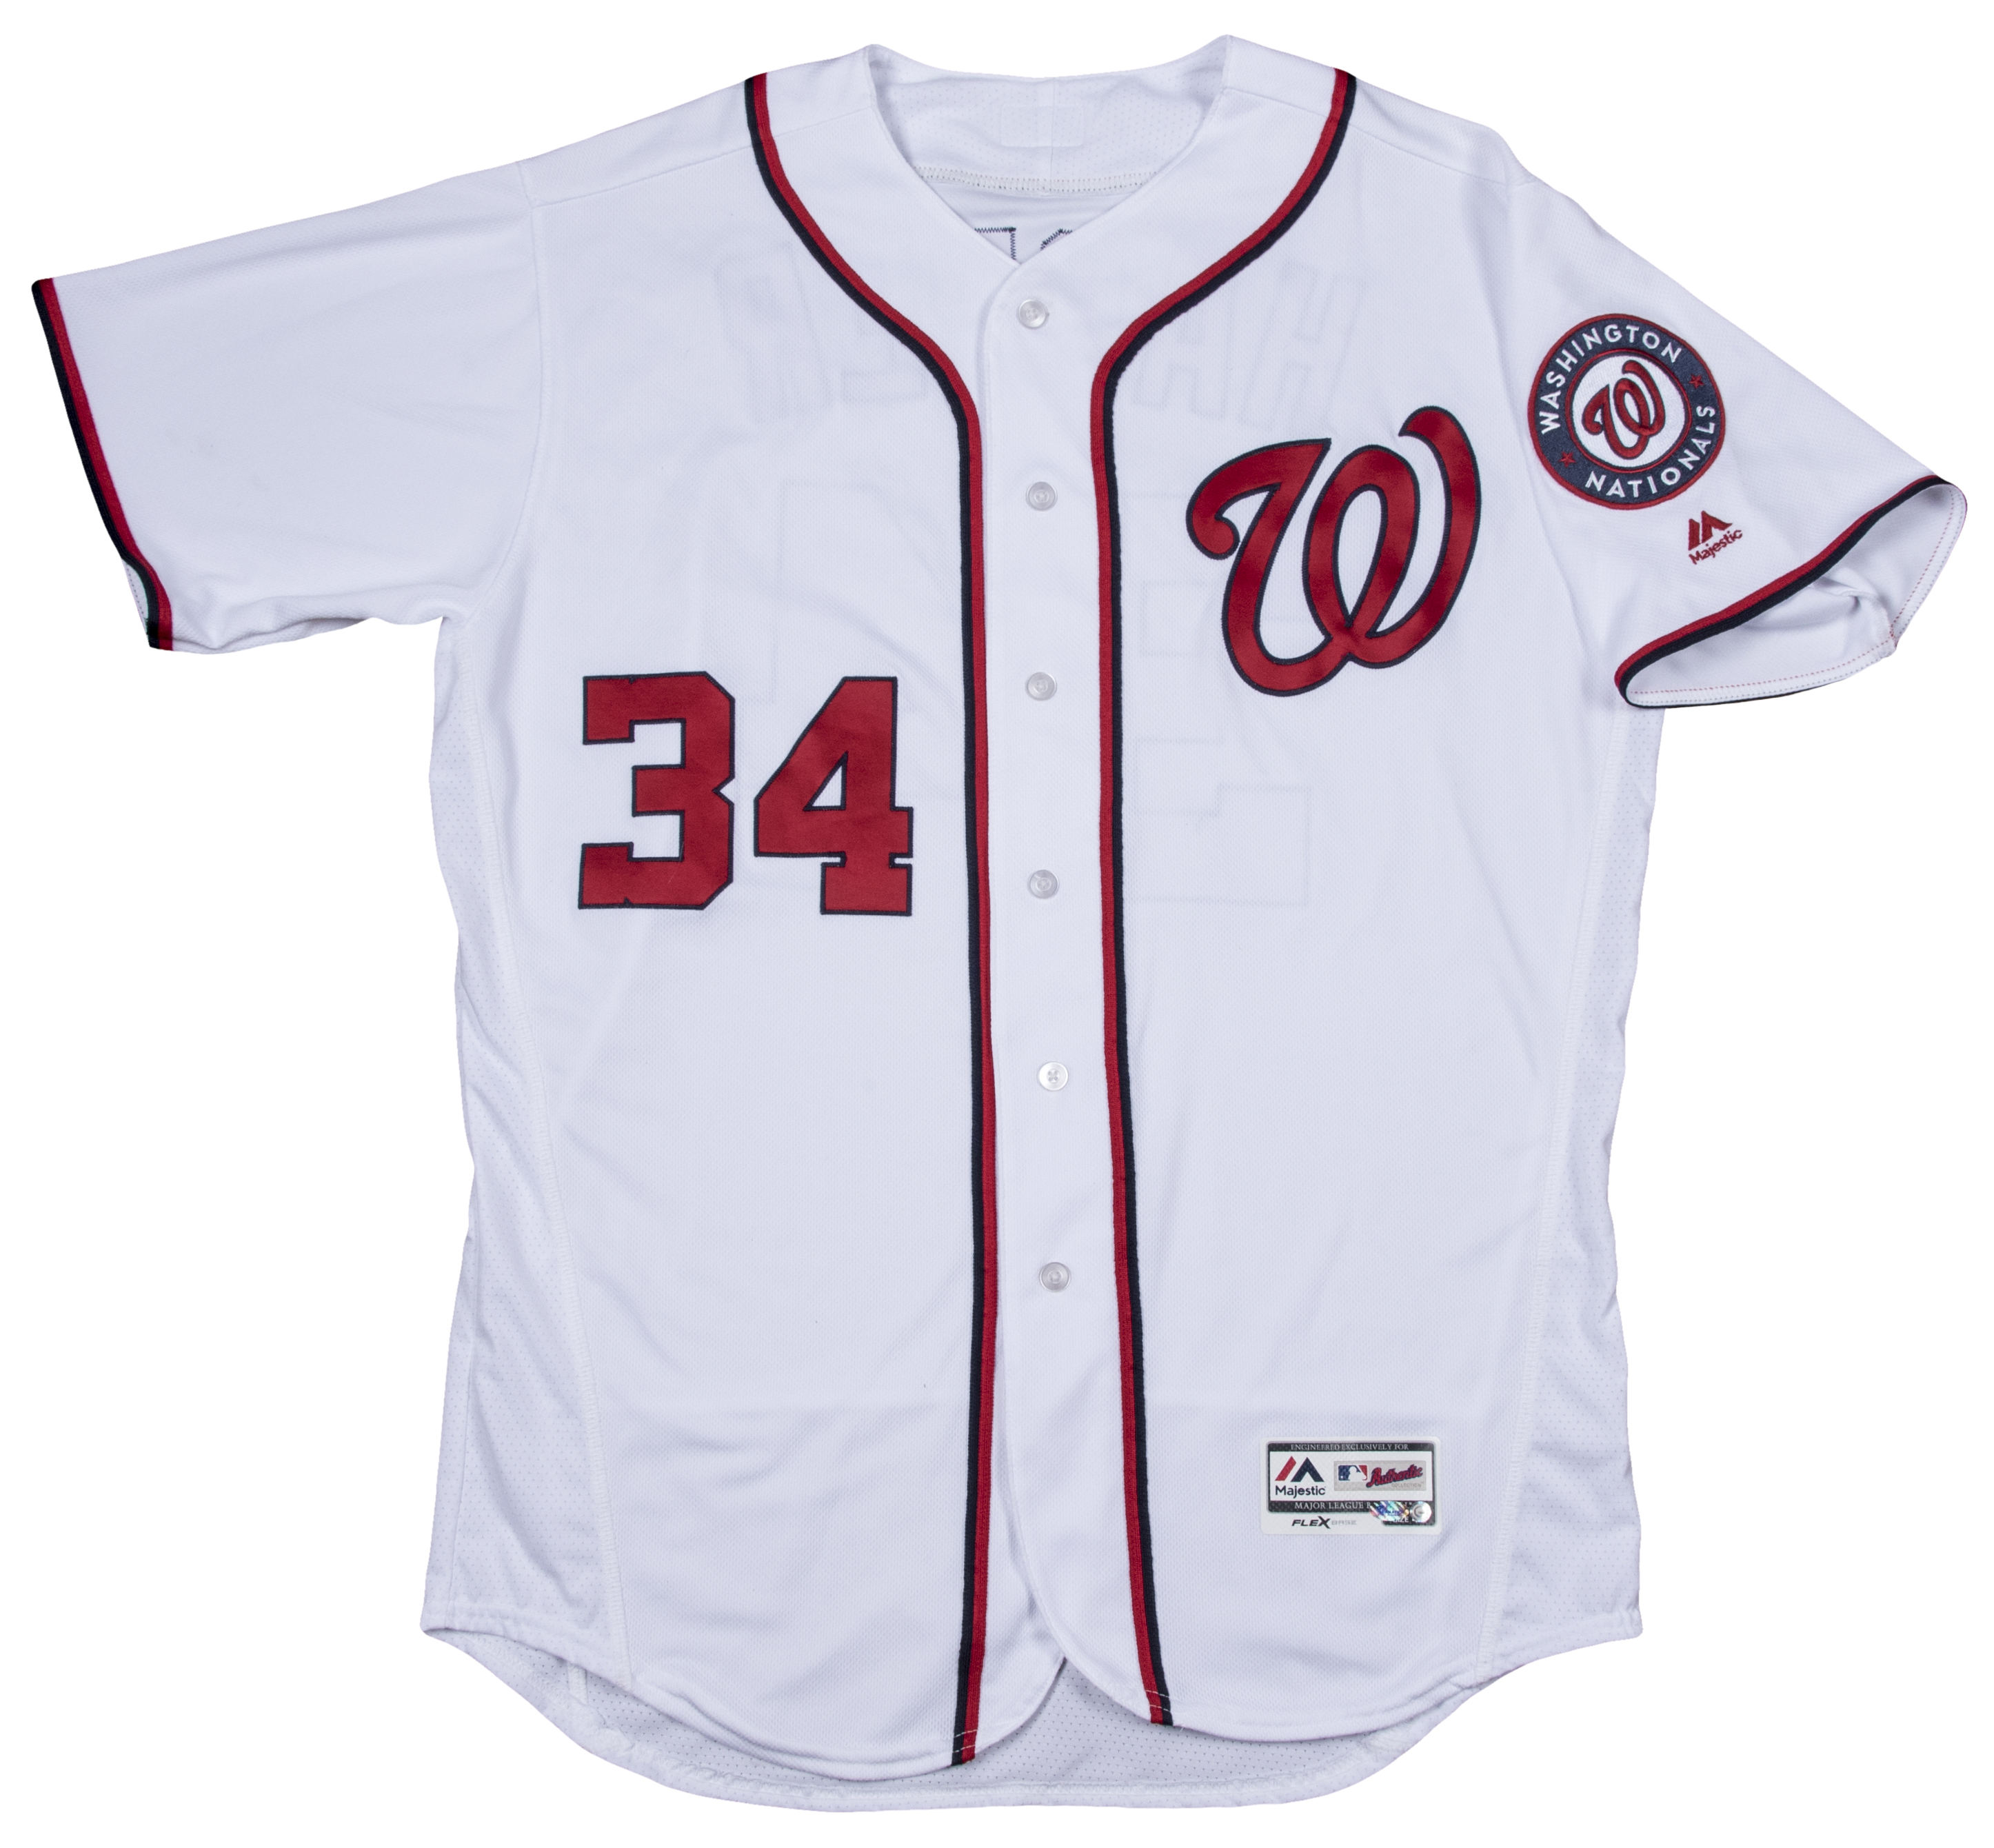 6b17baf98 2016 Bryce Harper Game Used Washington Nationals Opening Day Home Jersey  Worn On 4 7. Hover to zoom. Prev Next